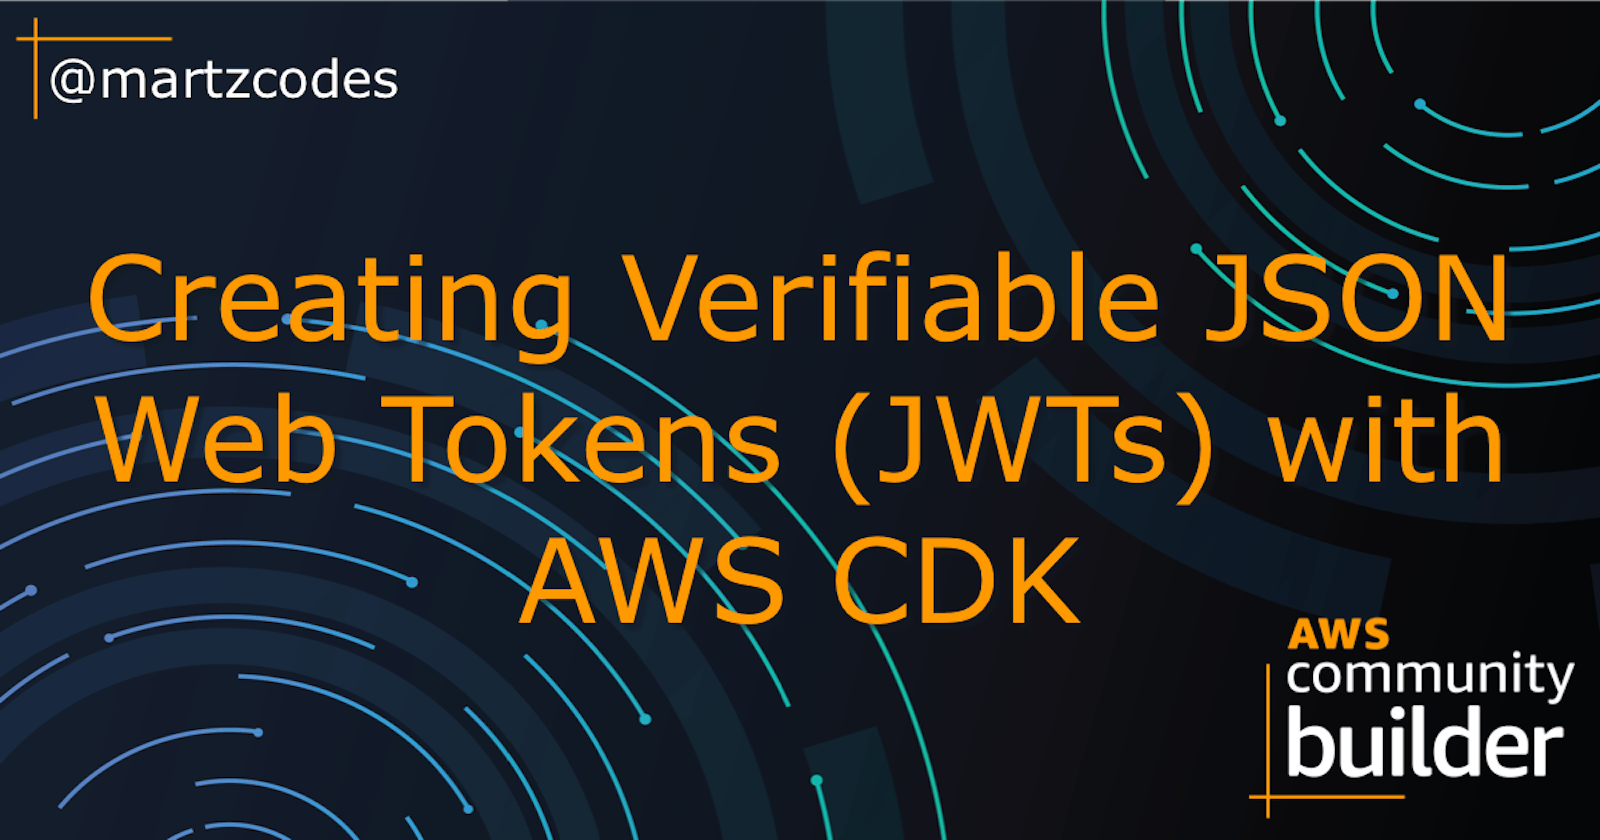 Creating Verifiable JSON Web Tokens (JWTs) with AWS CDK